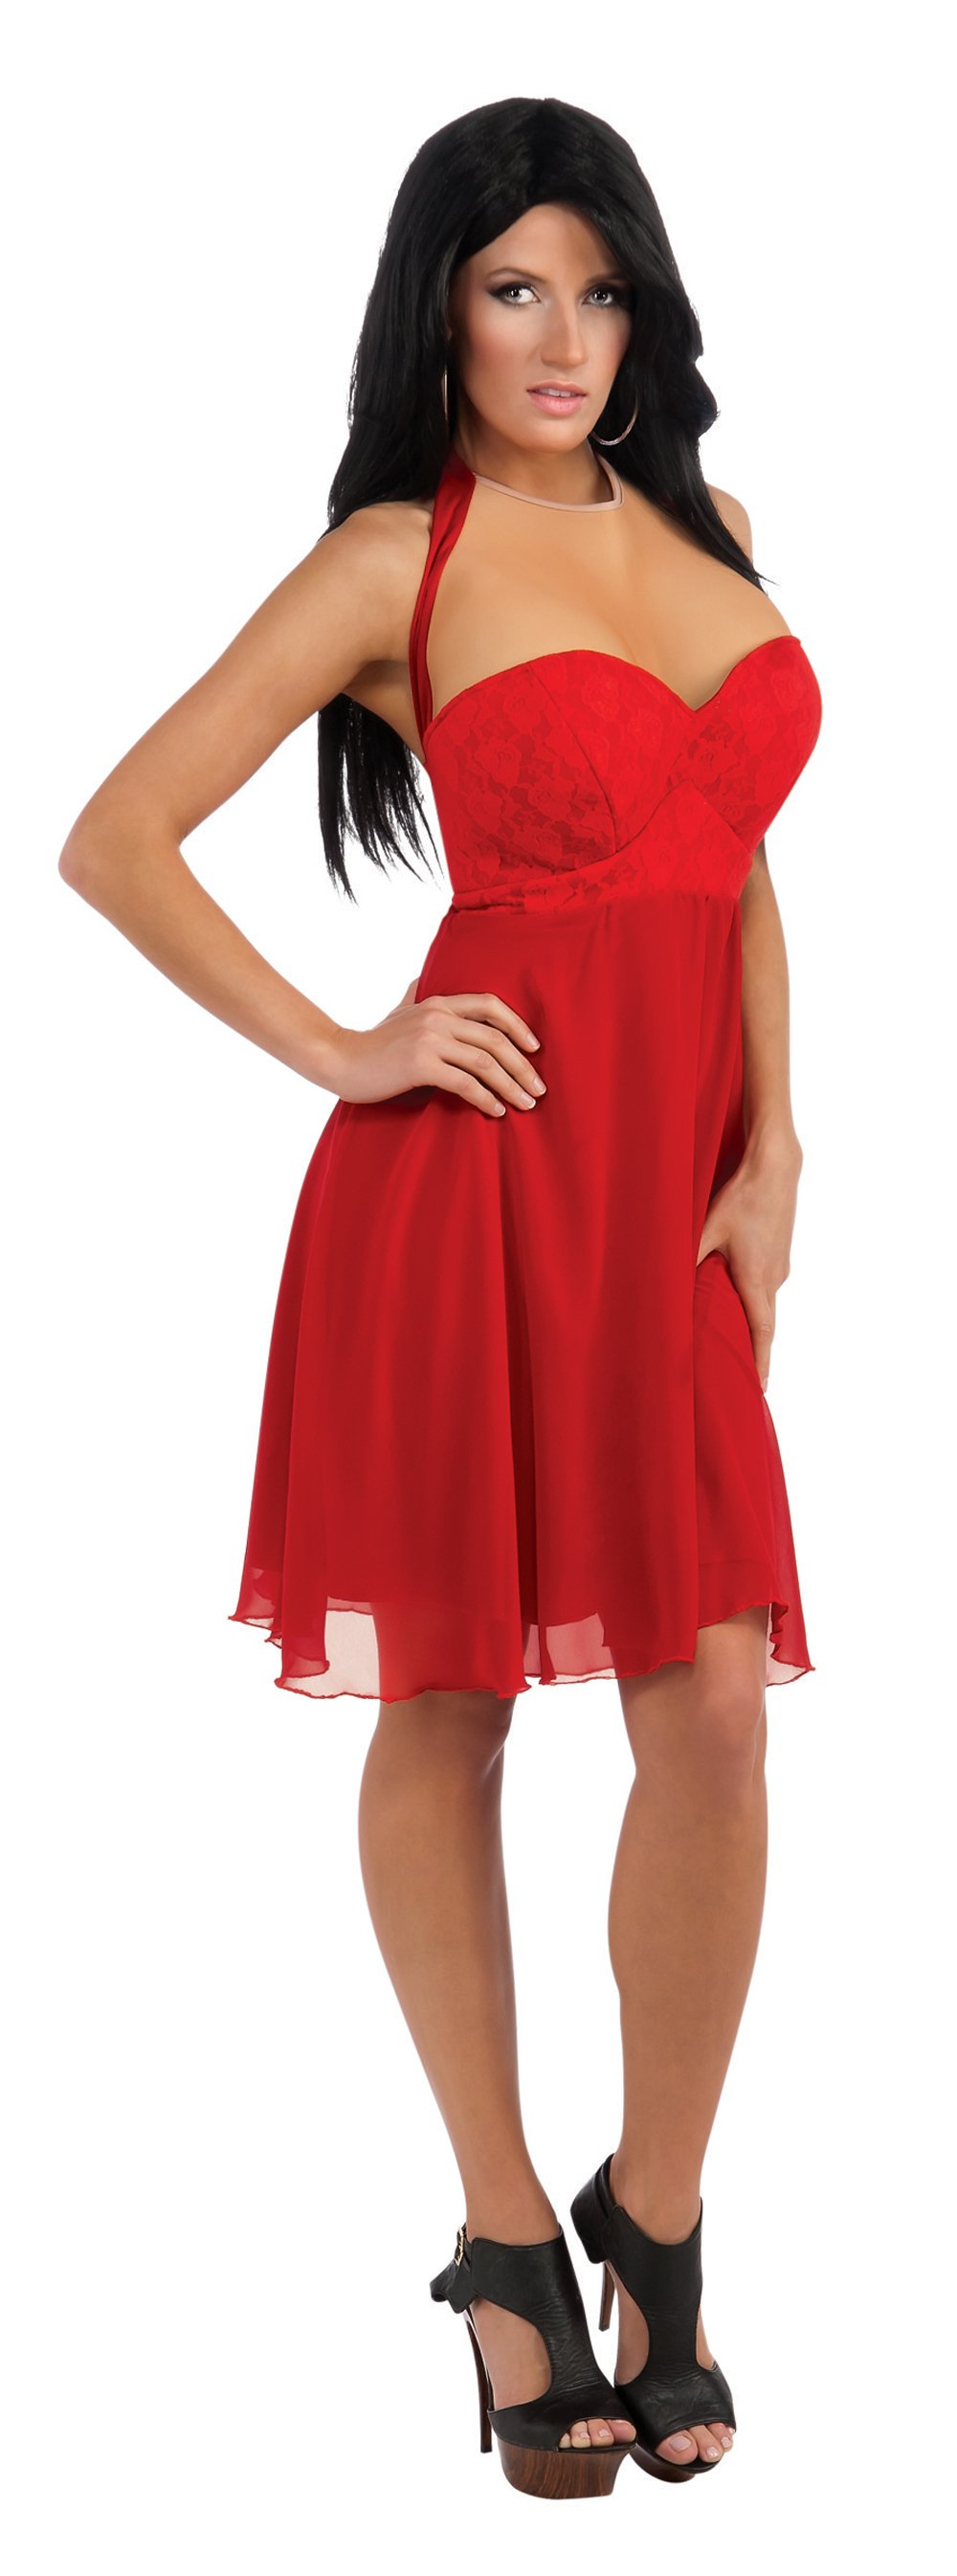 Jersey Shore JWoWW Red Dress Adult Costume